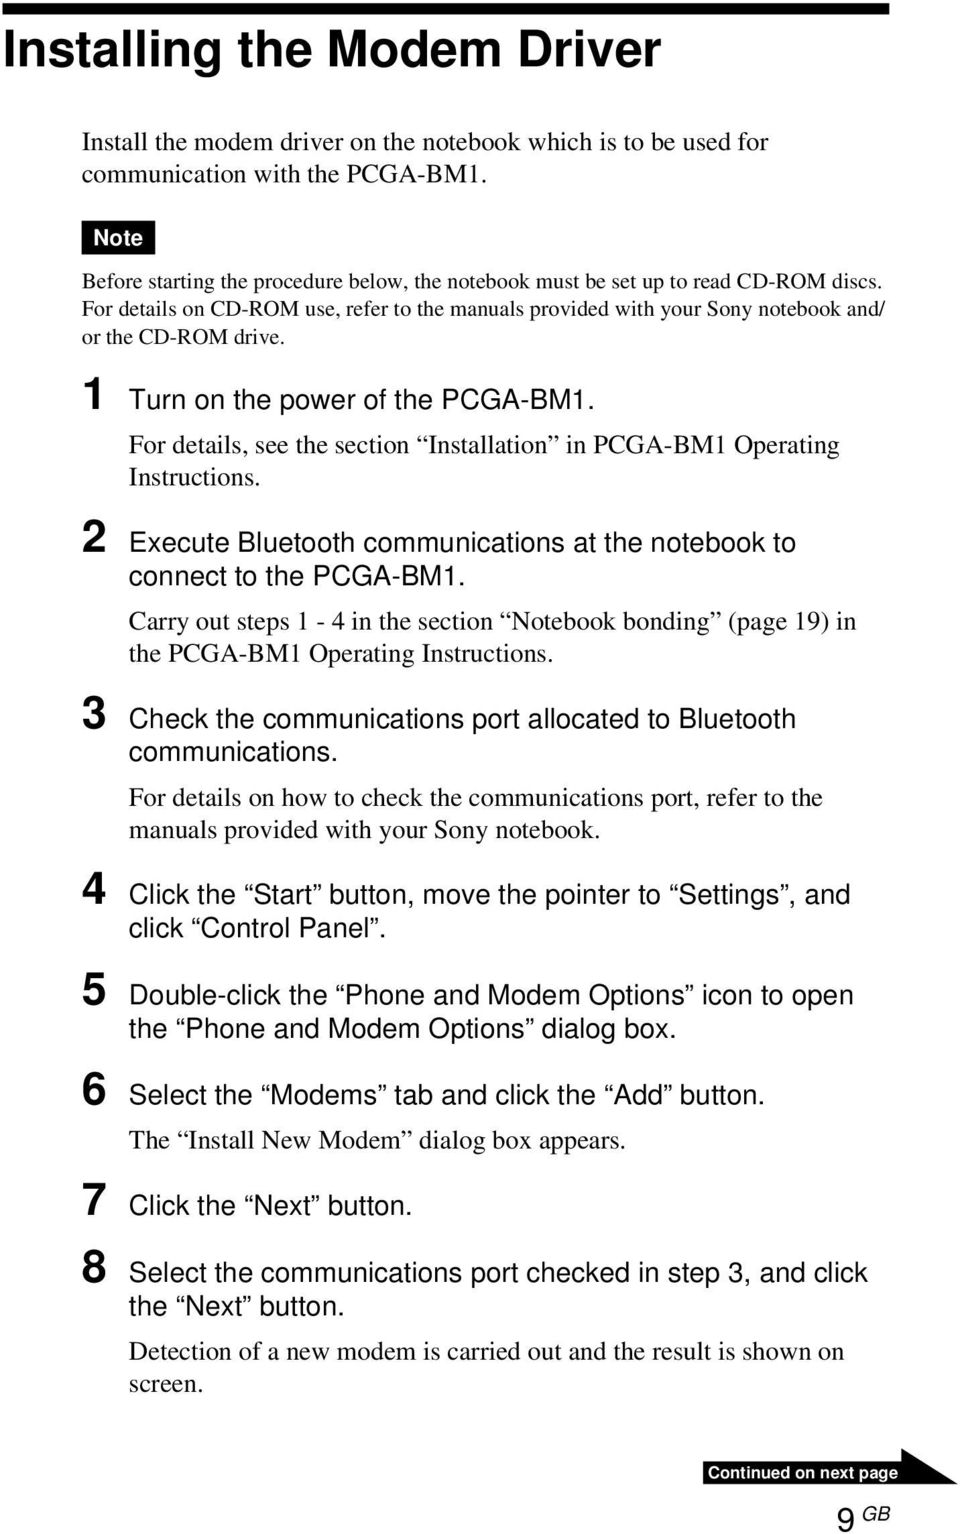 1 Turn on the power of the PCGA-BM1. For details, see the section Installation in PCGA-BM1 Operating Instructions. 2 Execute Bluetooth communications at the notebook to connect to the PCGA-BM1.